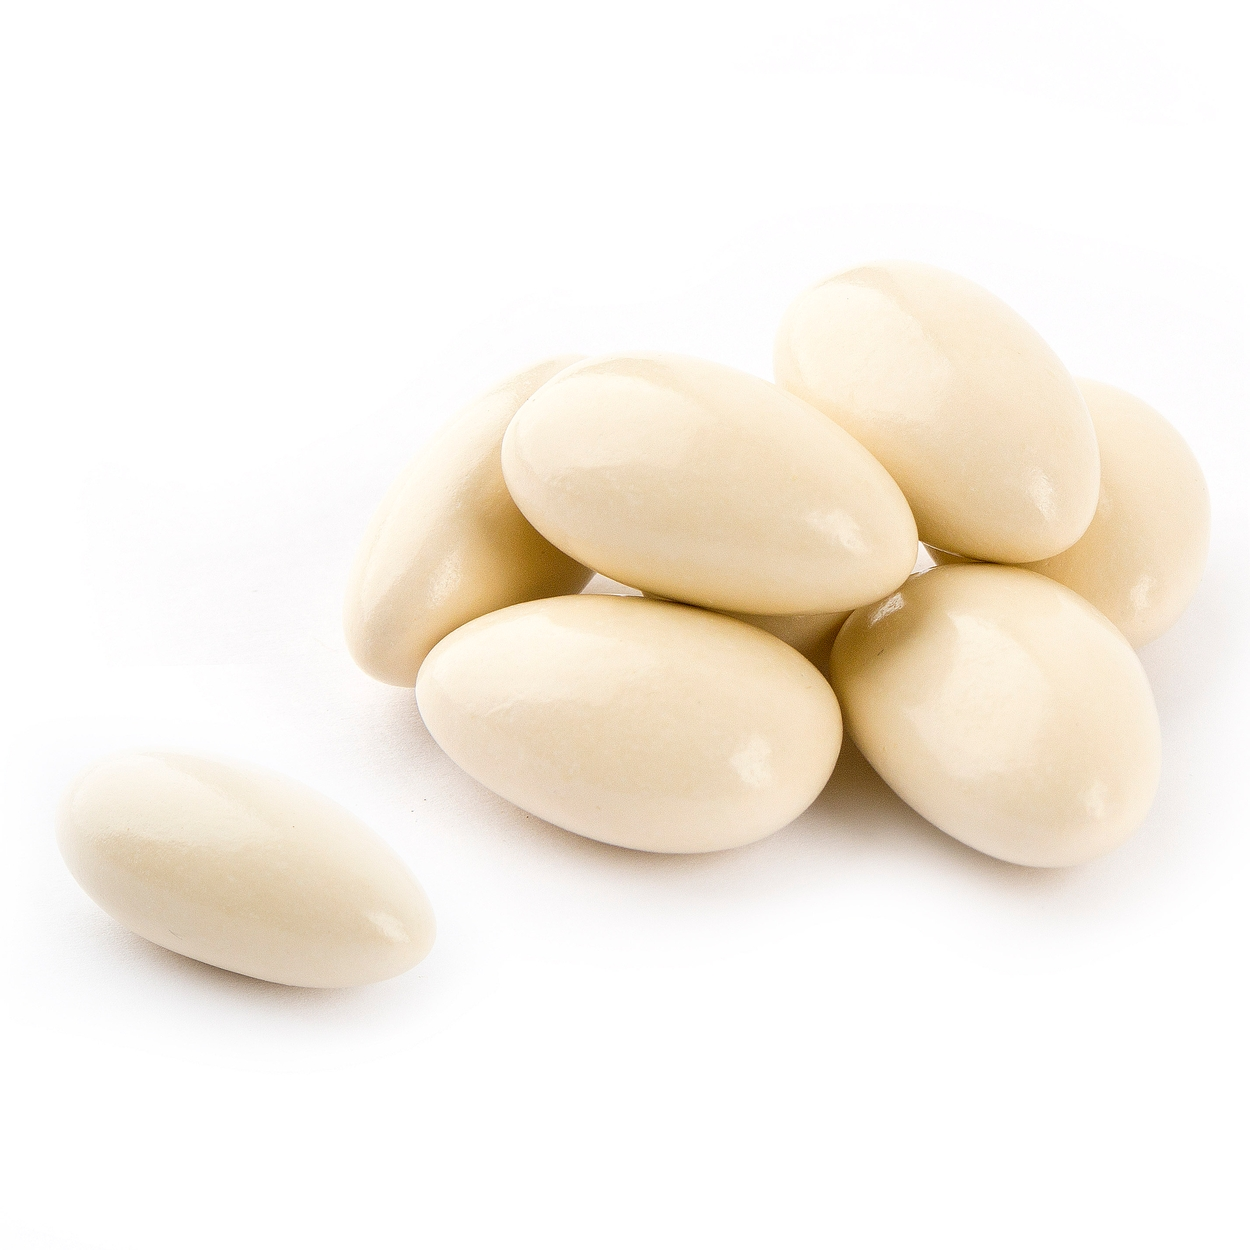 Super Fine Ivory Jordan Almonds - Cappuccino • Jordan Almonds Candy ...